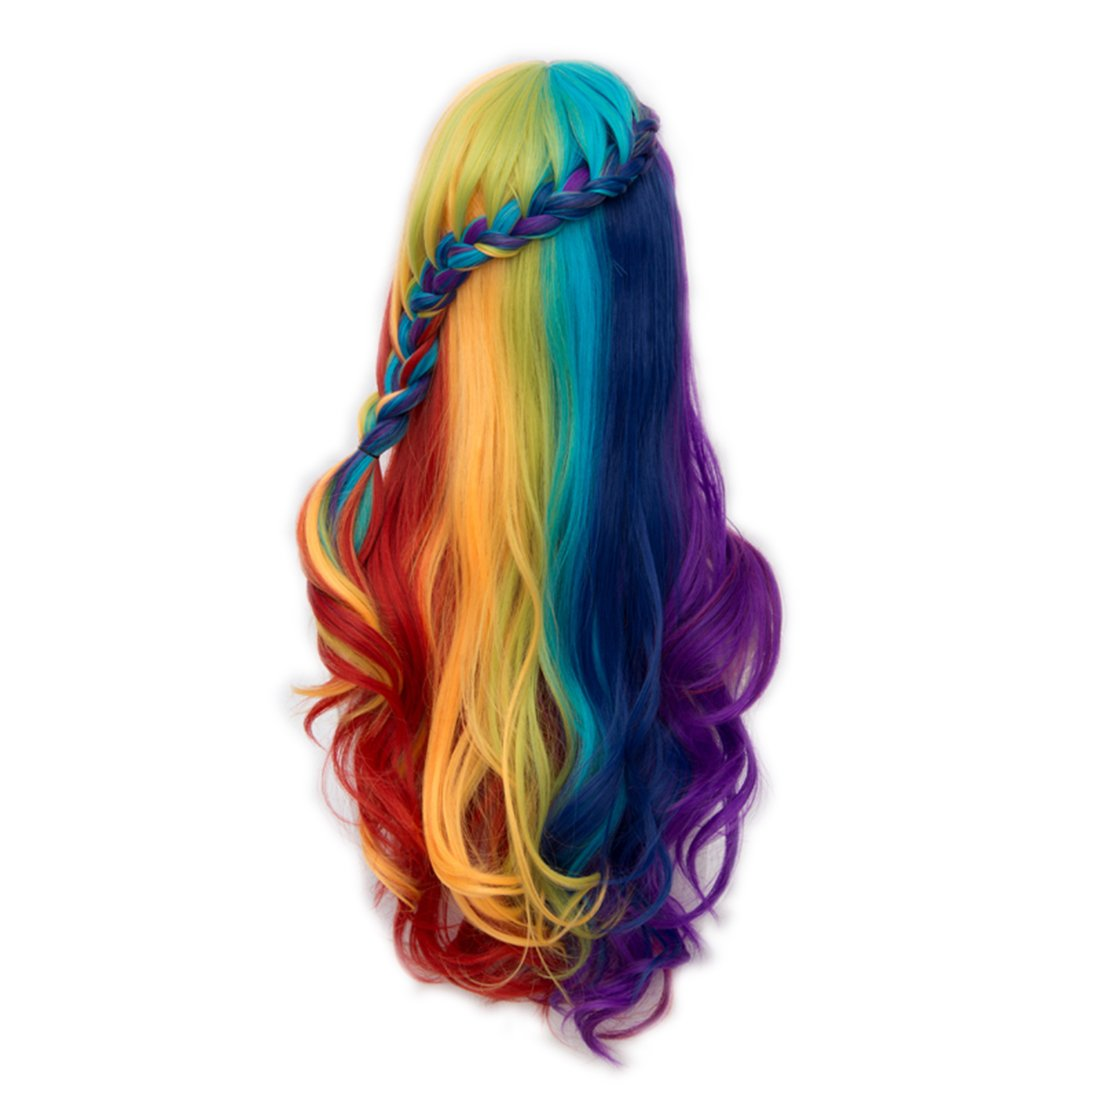 Alacos Rainbow Color 72cm Long Braid Curly Gothic Lolita Harajuku Anime Cosplay Christmas Costume Wigs for Women +Free Wig Cap (Red/Yellow/Blue/Purple)